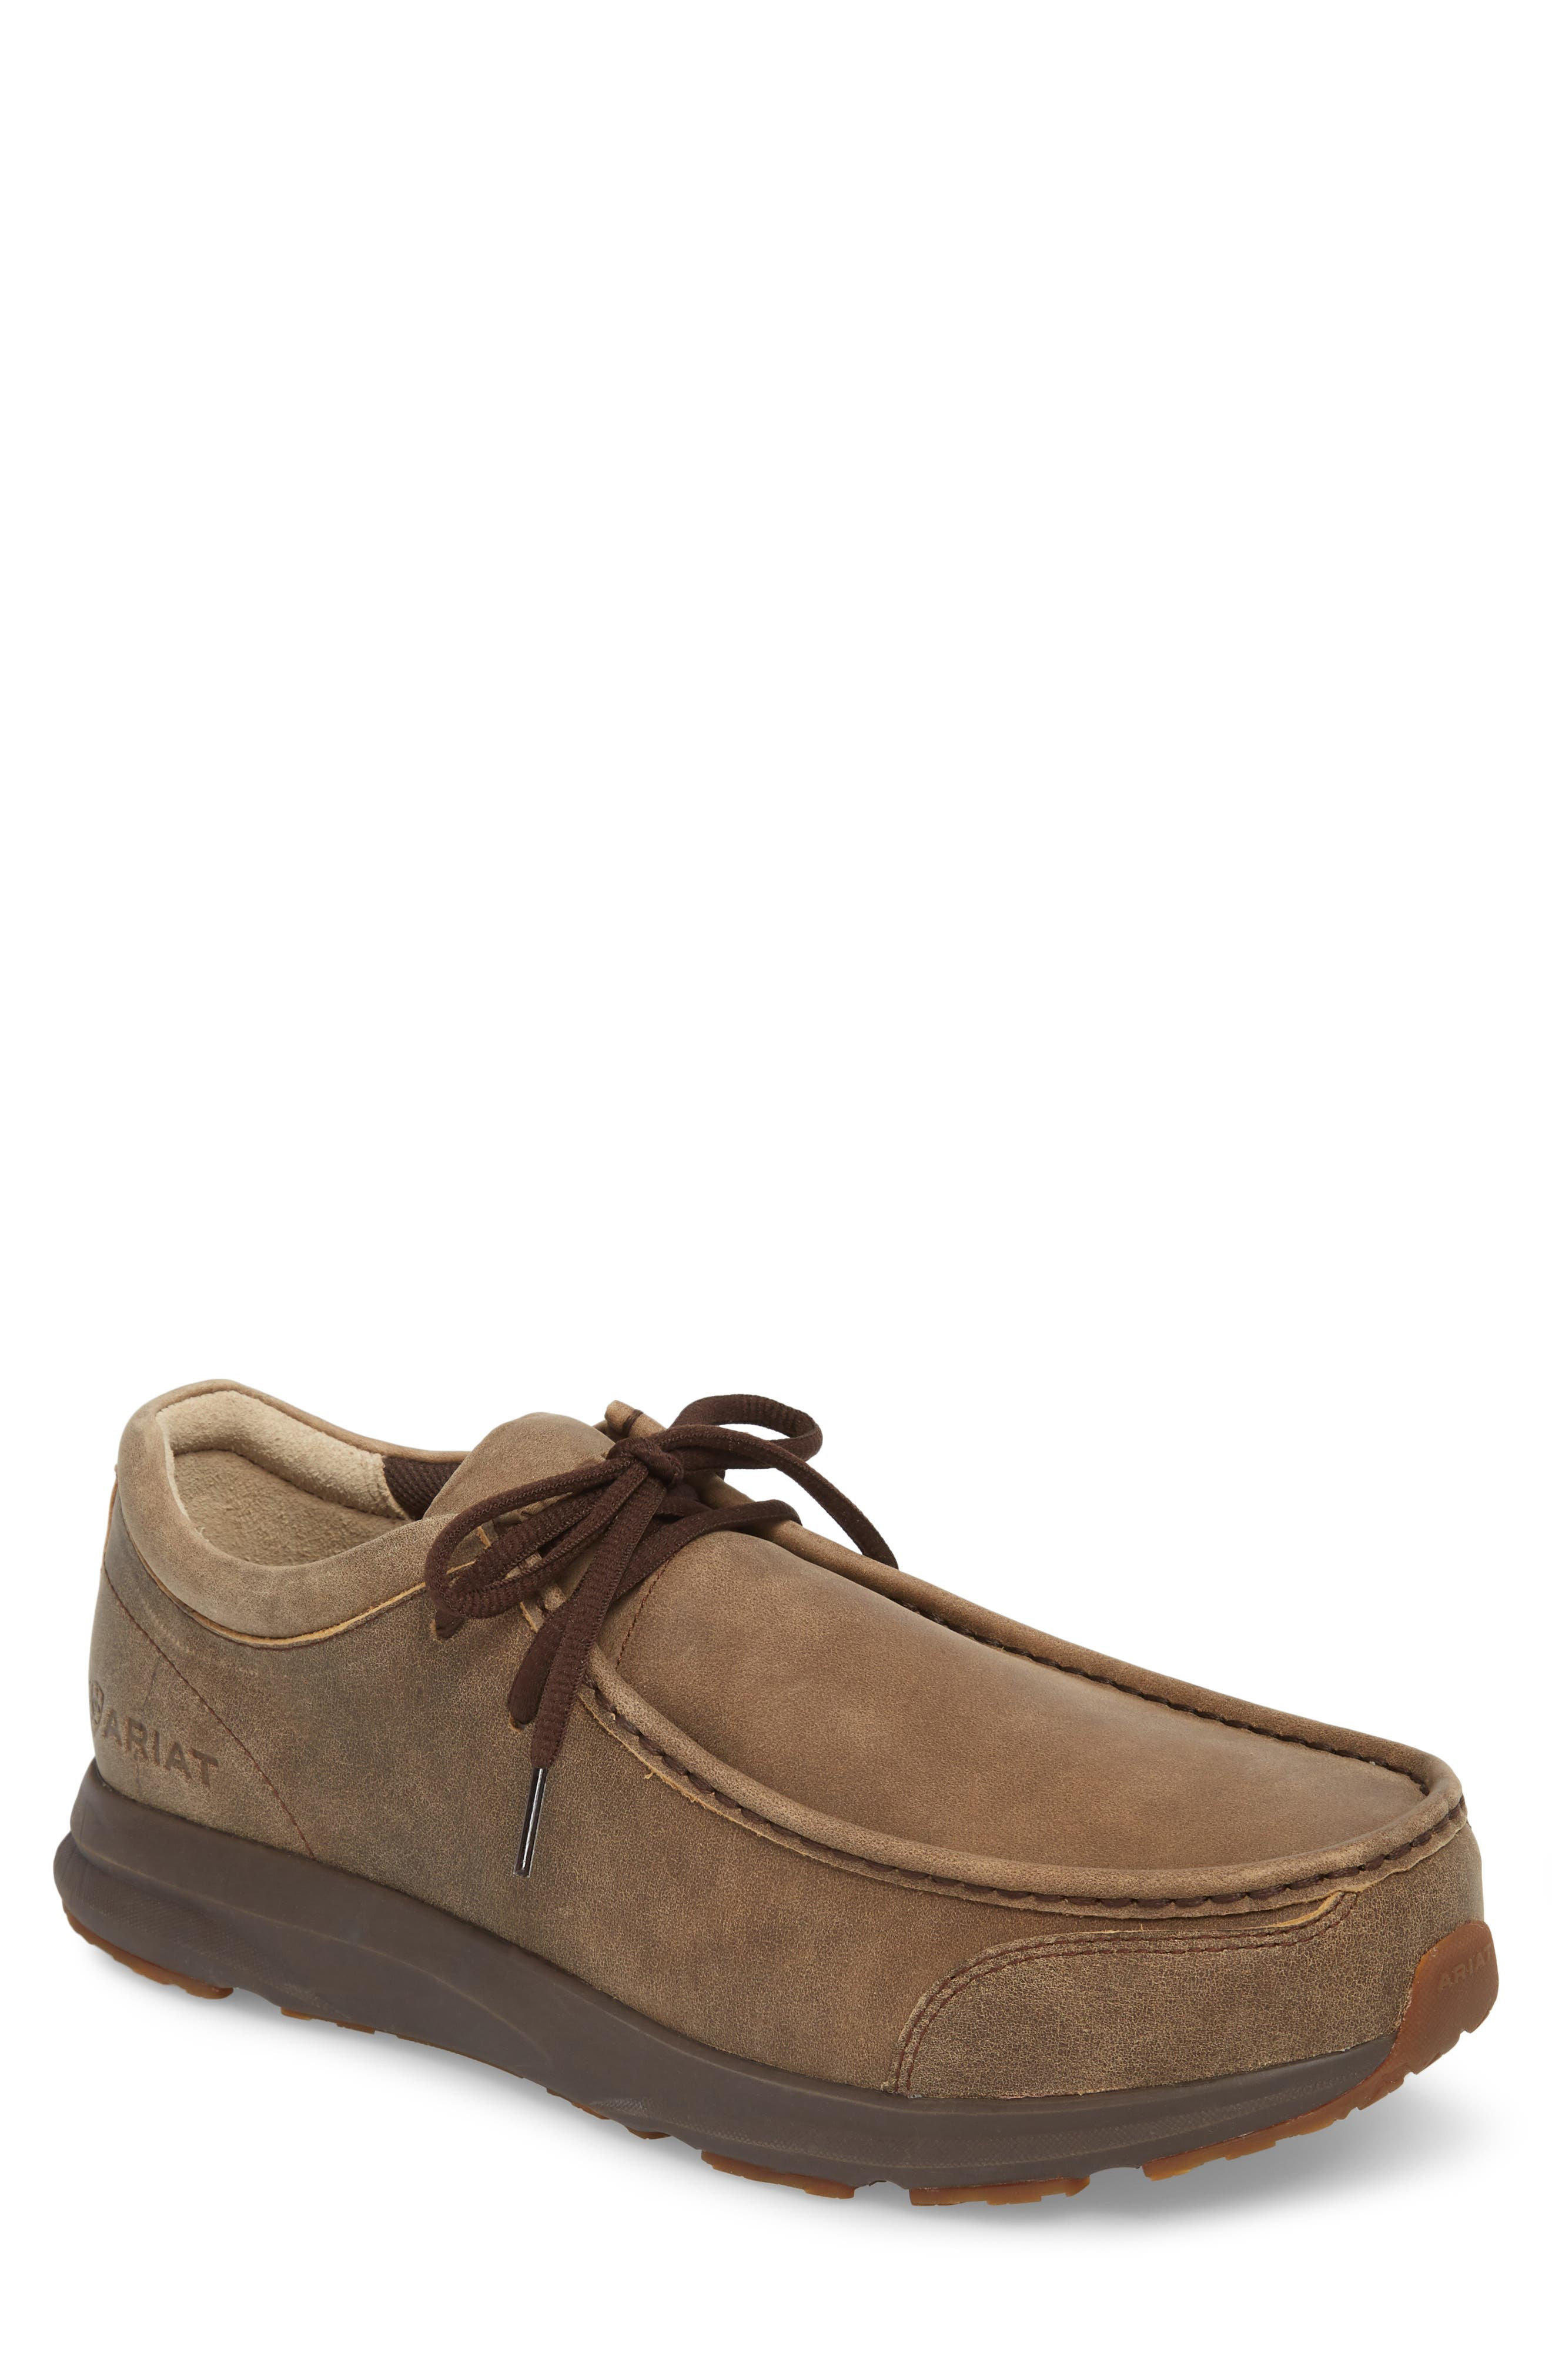 Spitfire Moc Toe Lace-Up,                             Main thumbnail 1, color,                             BROWN LEATHER